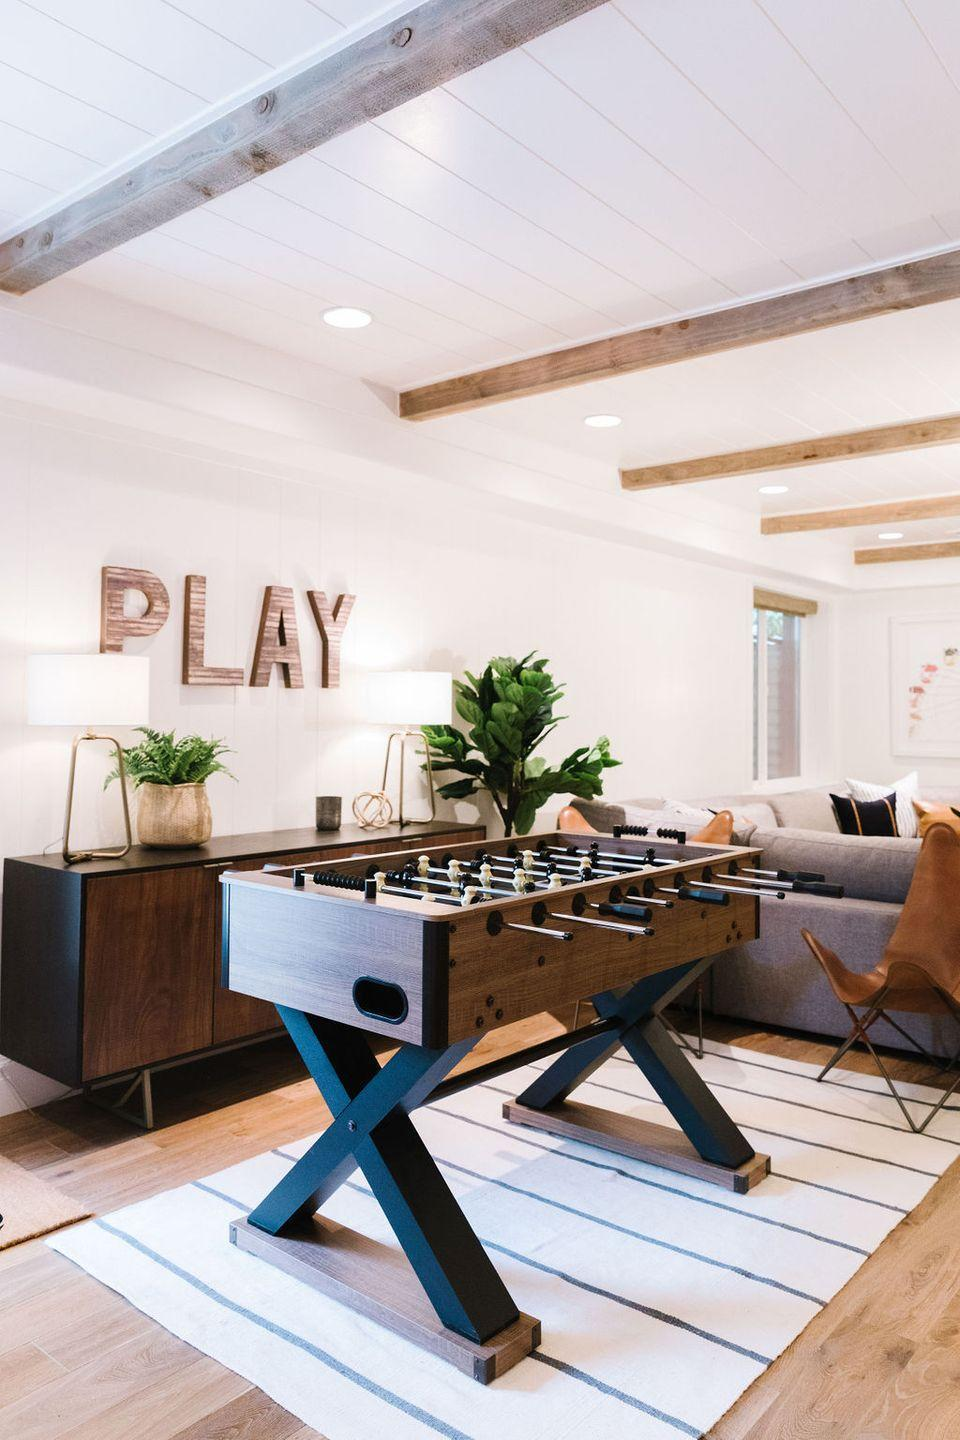 "<p>This family-friendly basement living room is filled with fun touches, like an oversized Ferris wheel print, a ""PLAY"" wall sign, and the most beautiful modern foosball table you'll ever see. Let the games begin!</p><p><strong>See more at <a href=""https://stagg-design.com/all/basement-kitchen-reveal-project-modern-family/"" rel=""nofollow noopener"" target=""_blank"" data-ylk=""slk:Stagg Design"" class=""link rapid-noclick-resp"">Stagg Design</a>. </strong></p><p><a class=""link rapid-noclick-resp"" href=""https://go.redirectingat.com?id=74968X1596630&url=https%3A%2F%2Fwww.walmart.com%2Fip%2FBest-Choice-Products-48in-Competition-Sized-Soccer-Foosball-Table-w-2-Balls-2-Cup-Holders-for-Home-Game-Room-Arcade%2F51883102&sref=https%3A%2F%2Fwww.thepioneerwoman.com%2Fhome-lifestyle%2Fdecorating-ideas%2Fg34763691%2Fbasement-ideas%2F"" rel=""nofollow noopener"" target=""_blank"" data-ylk=""slk:SHOP FOOSBALL TABLES"">SHOP FOOSBALL TABLES</a></p>"